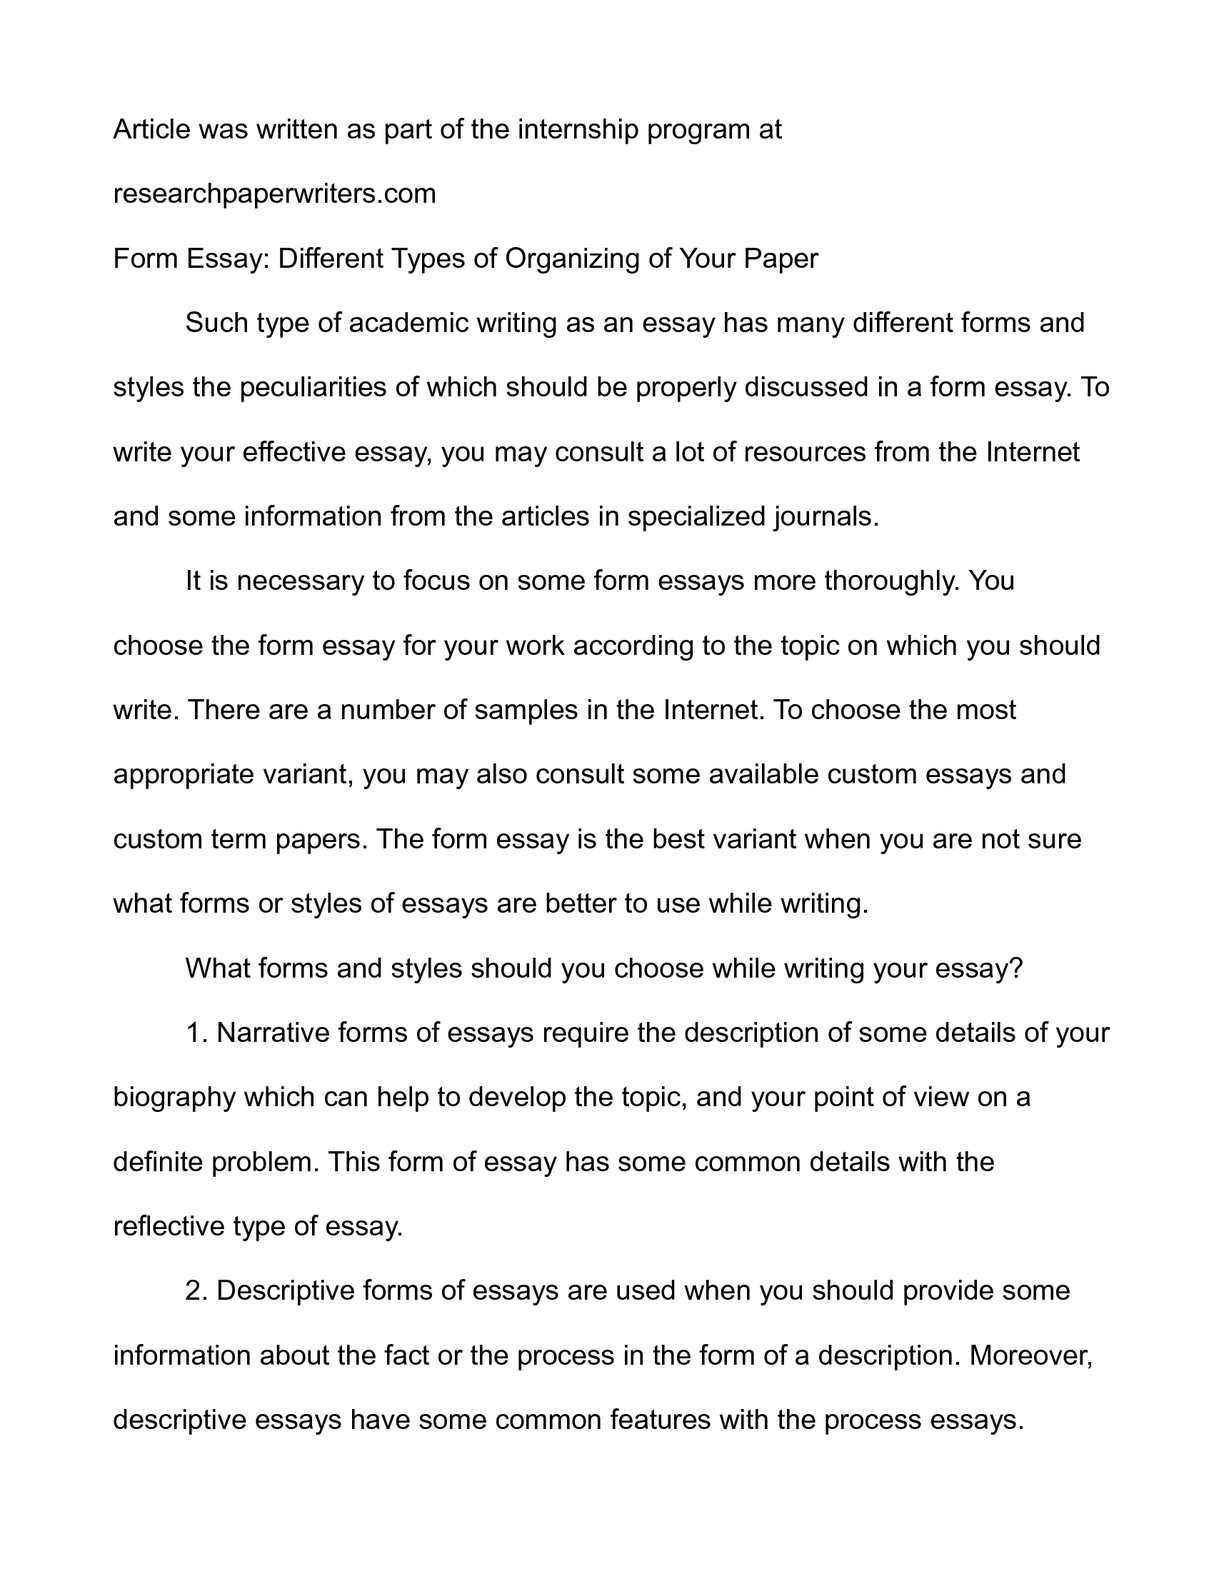 Thesis Of A Compare And Contrast Essay  Essay On Religion And Science also Health And Wellness Essay Calamo  Form Essay Different Types Of Organizing Of Your  Essays On Science And Religion